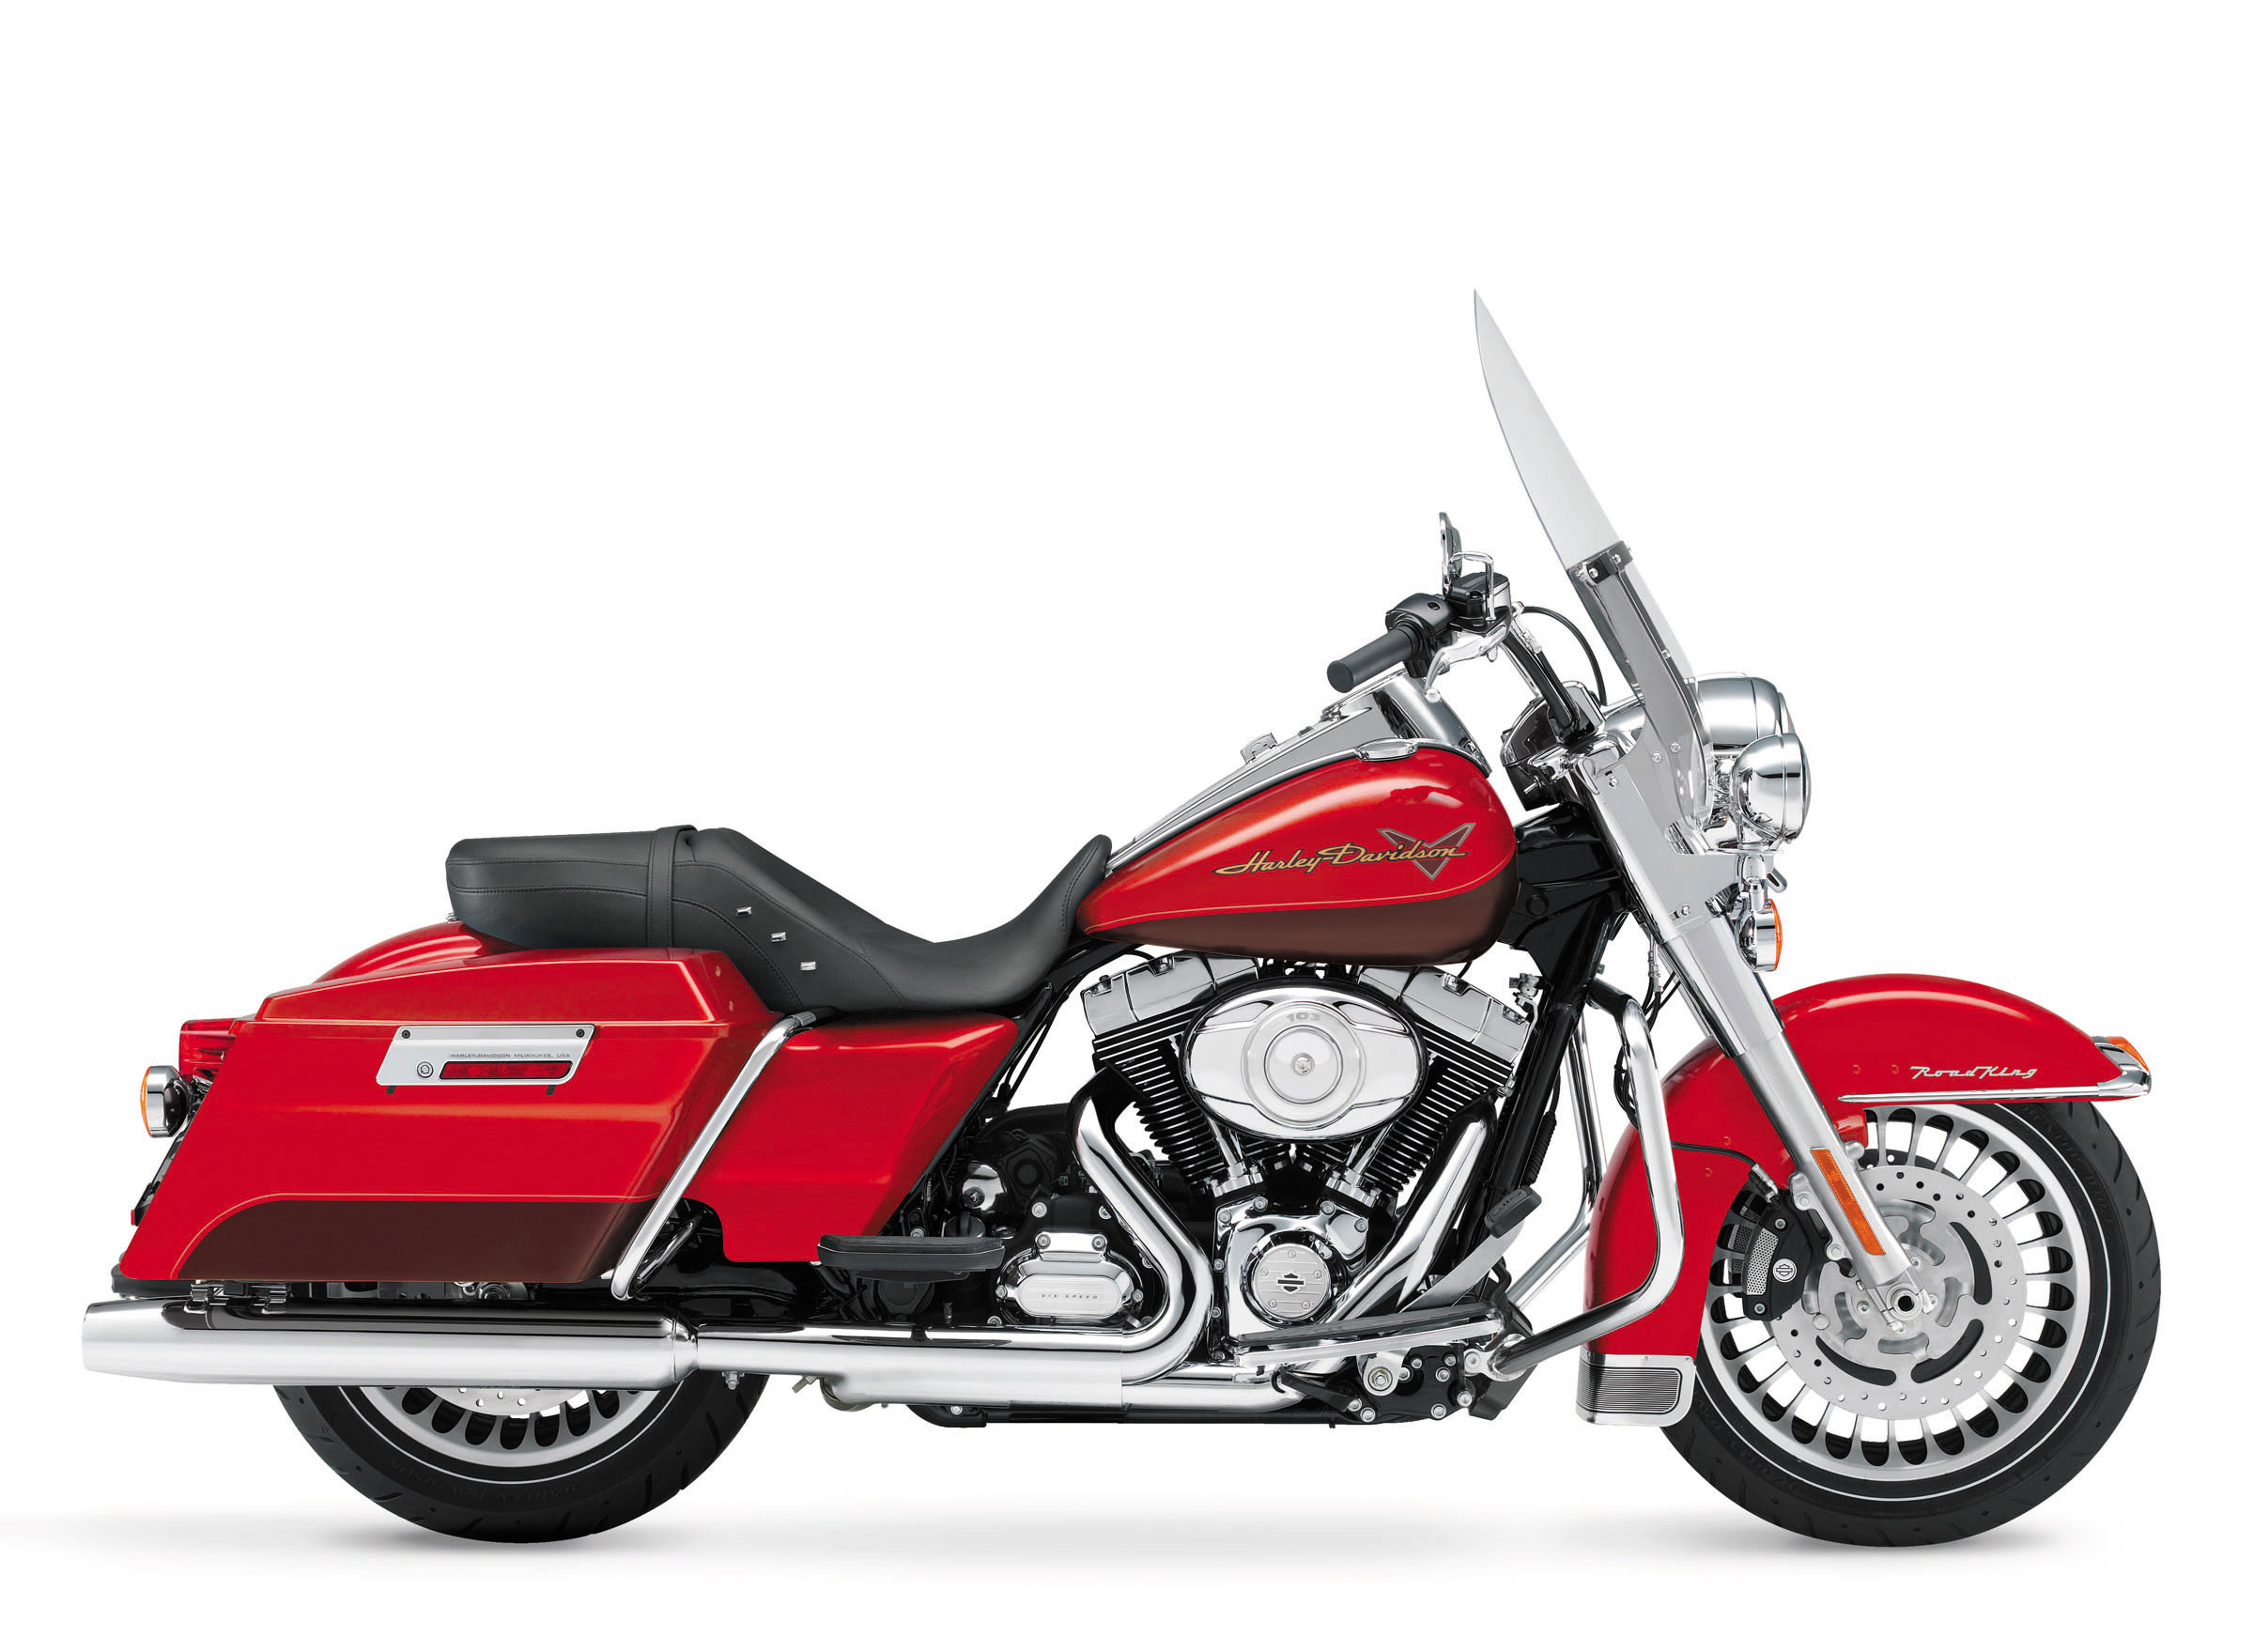 HARLEY DAVIDSON Firefighter Road King Special Edition (2001 - 2002)